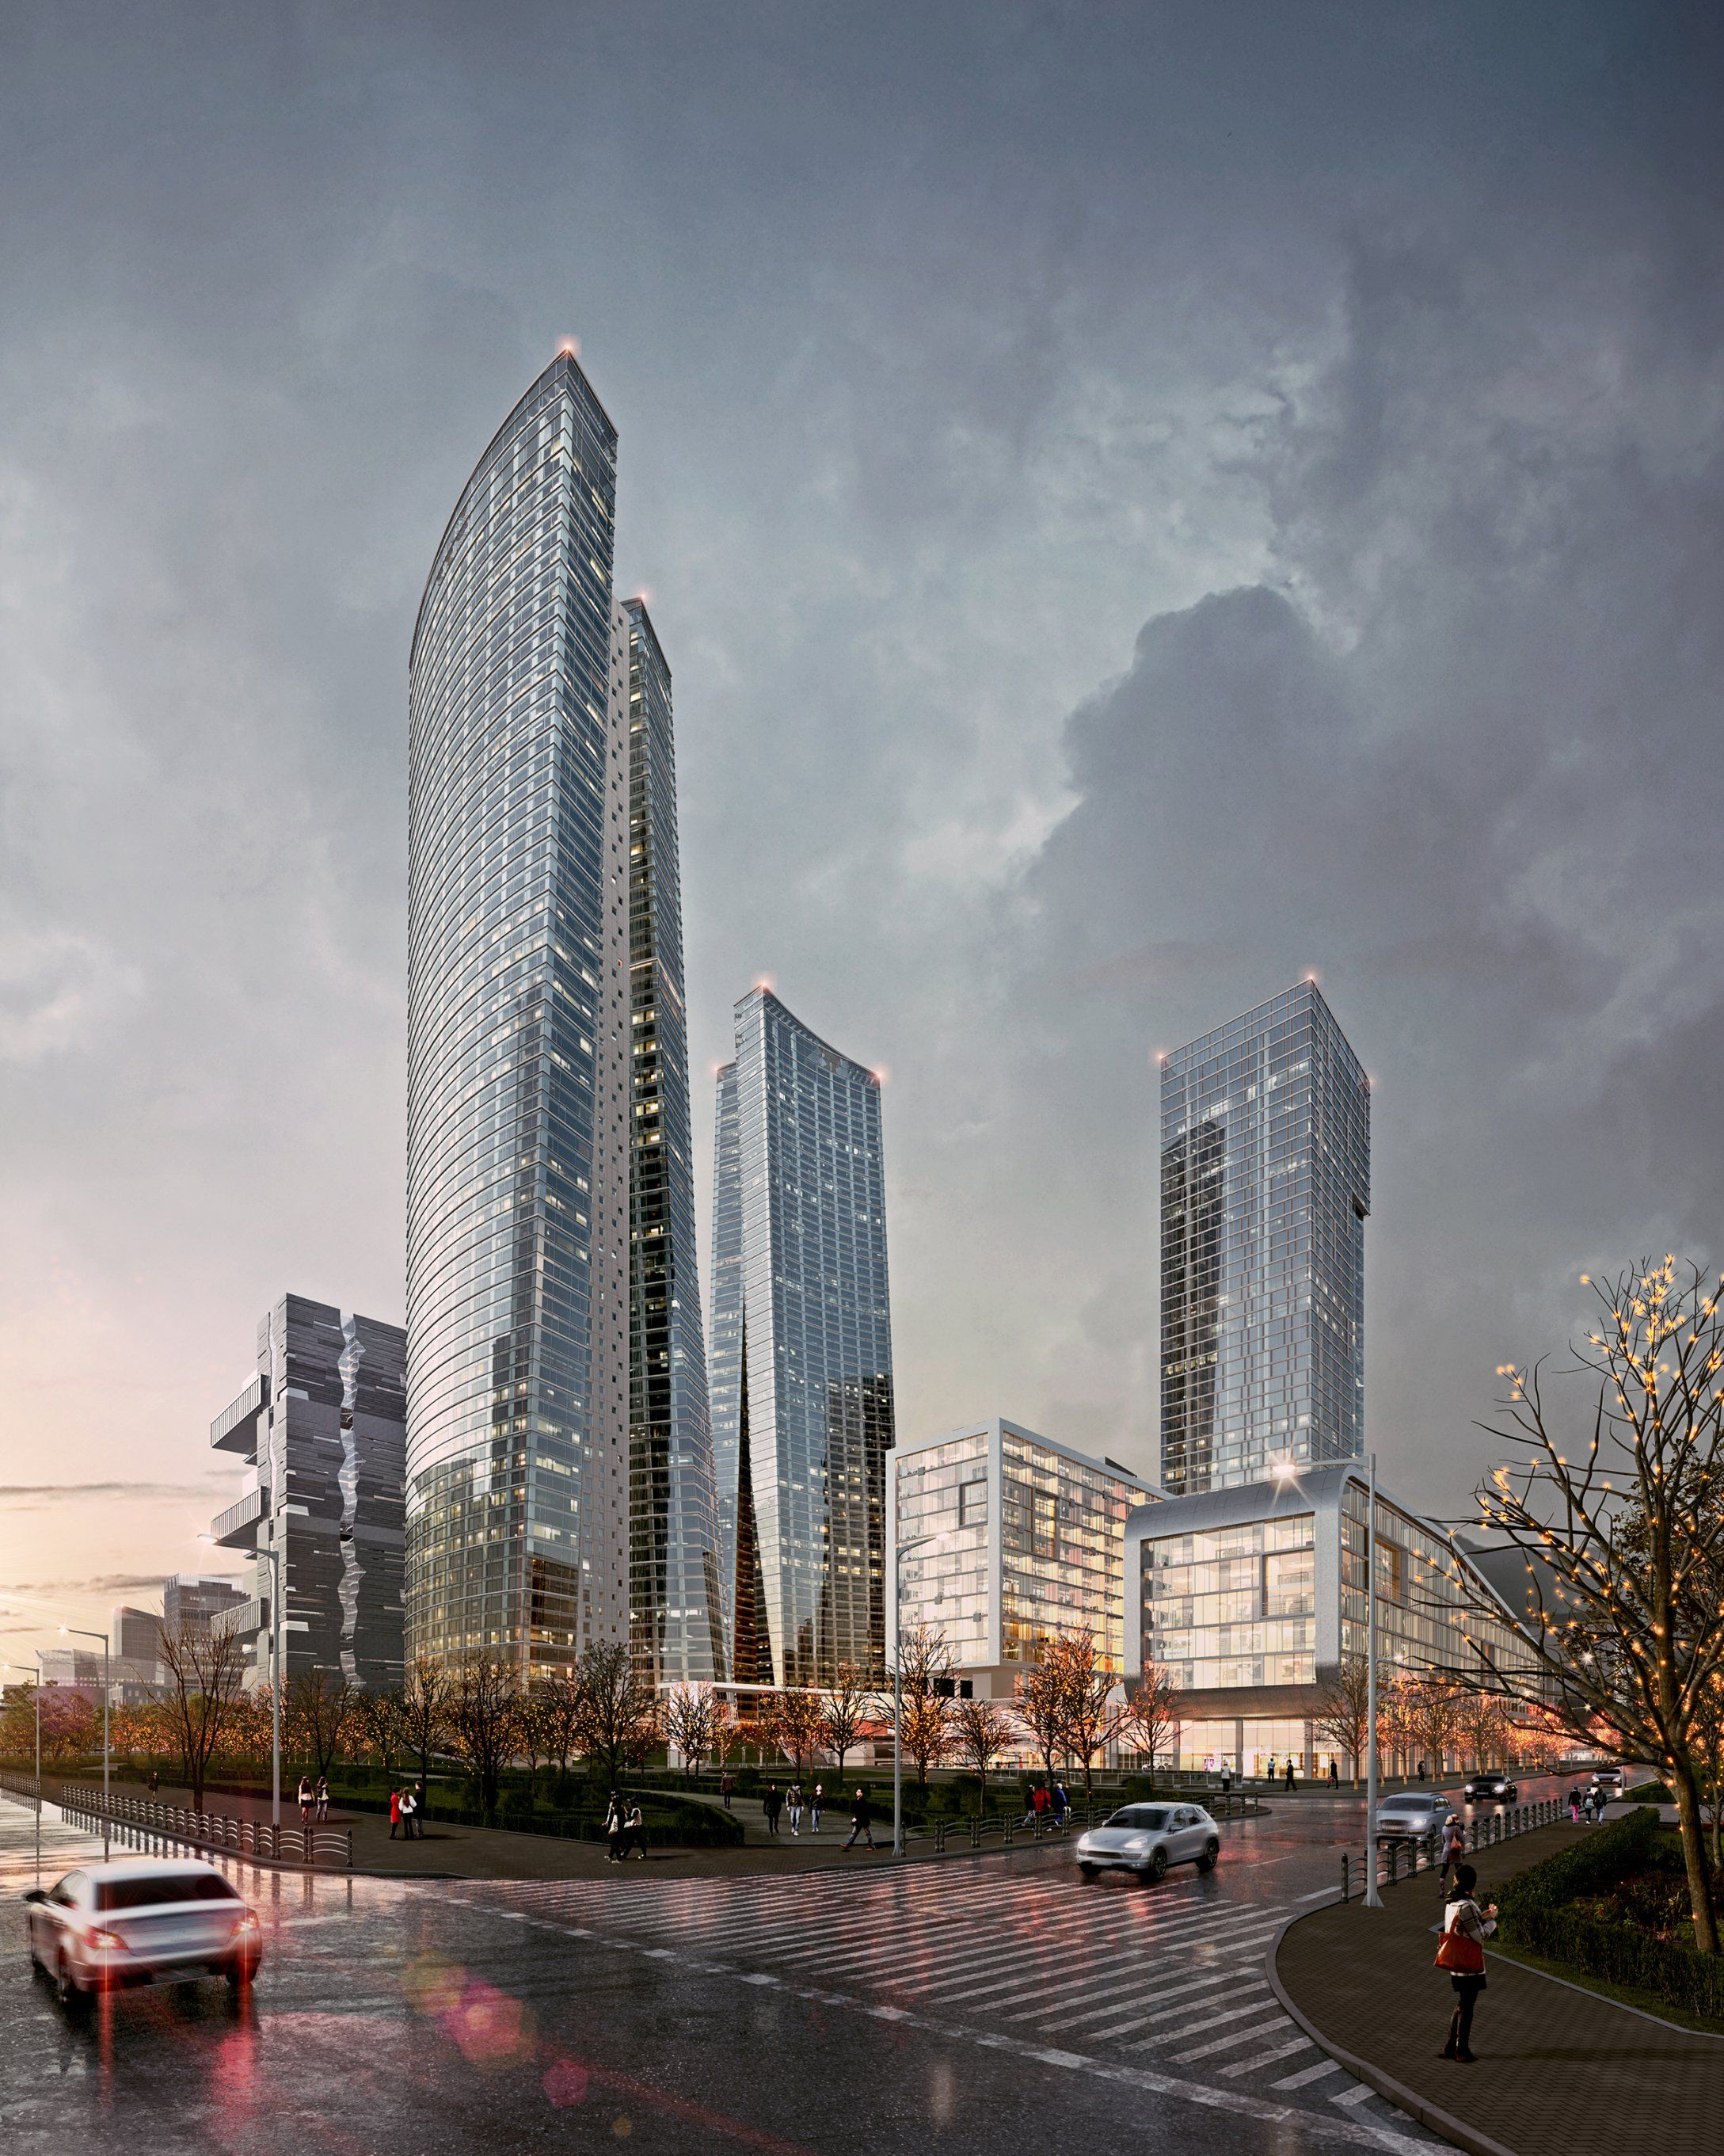 http://www.evermotion.org/vbulletin/showthread.php?101257-my-work |  Architecture rendering, Skyscraper architecture, Architecture visualization